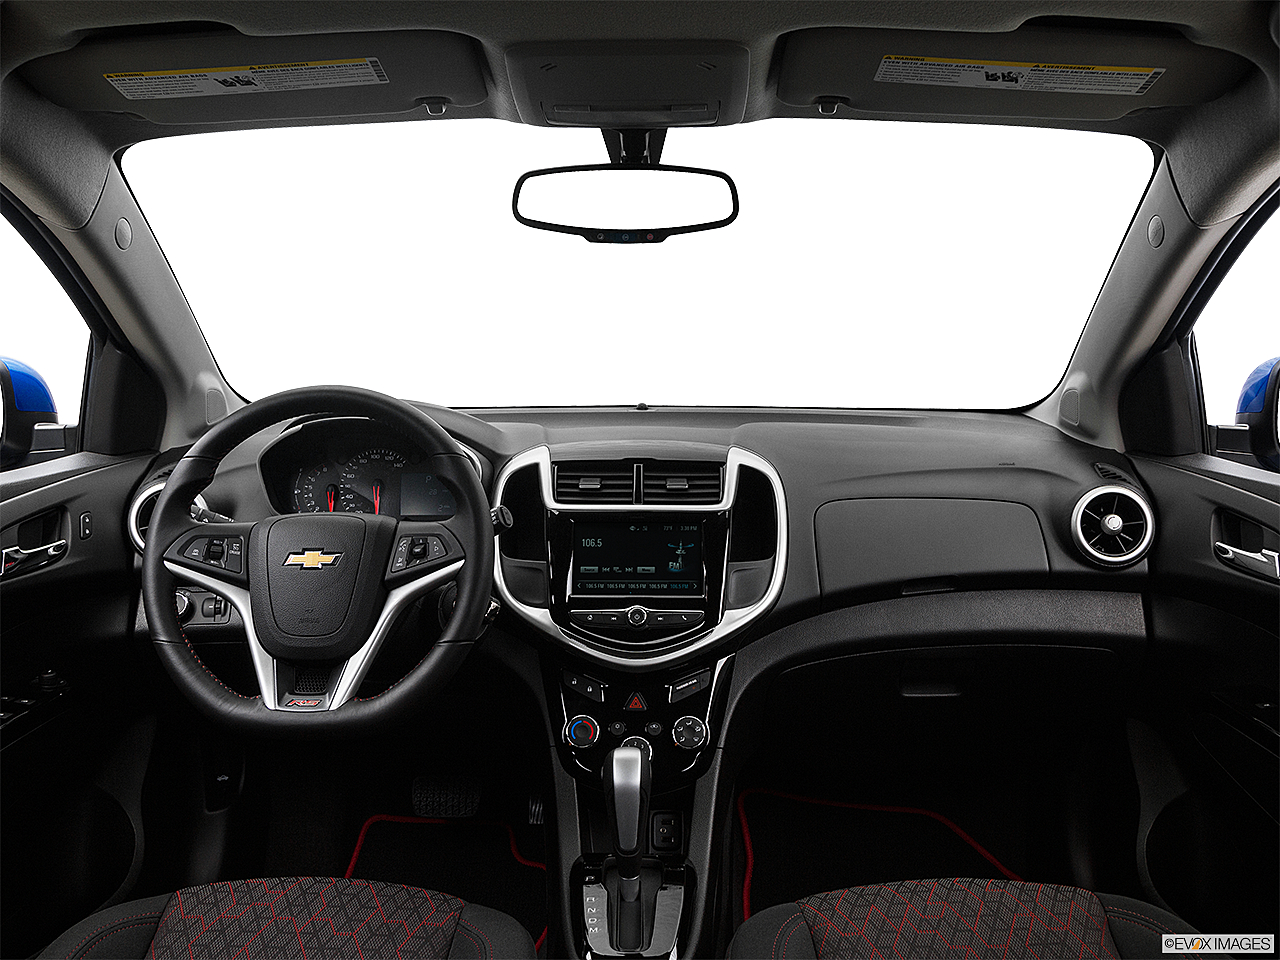 2017 Chevrolet Sonic Lt Auto 5 Door Centered Wide Dash Shot